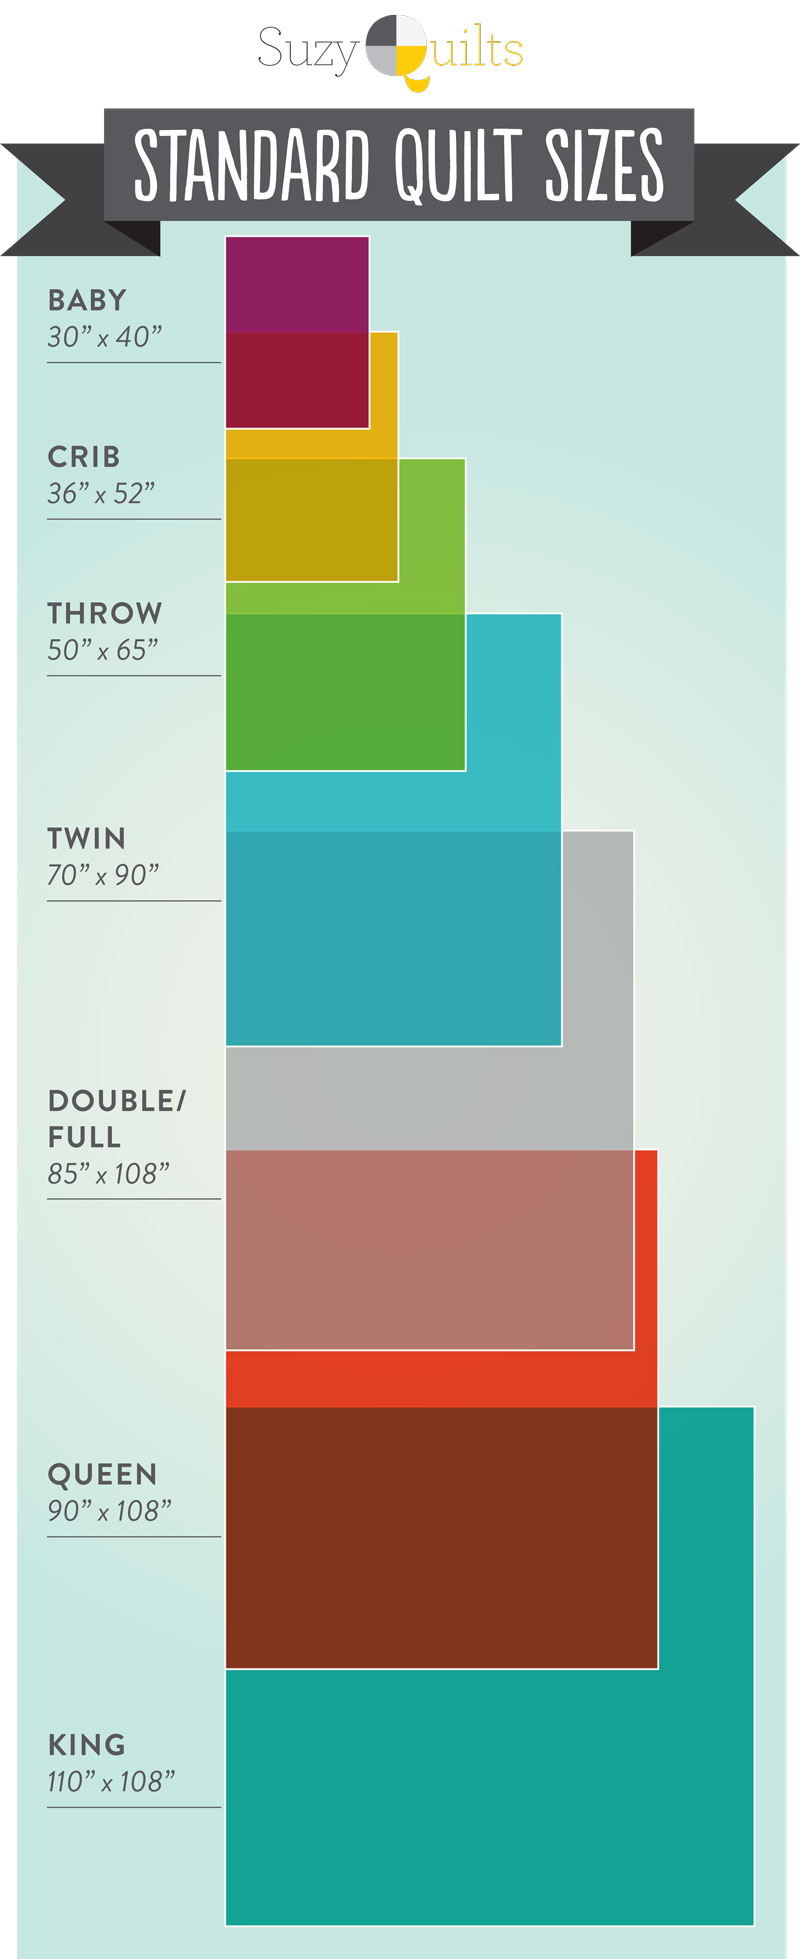 Before getting into too many details, take a look at this quilt sizes chart!  Quilt_Sizes_Infographic